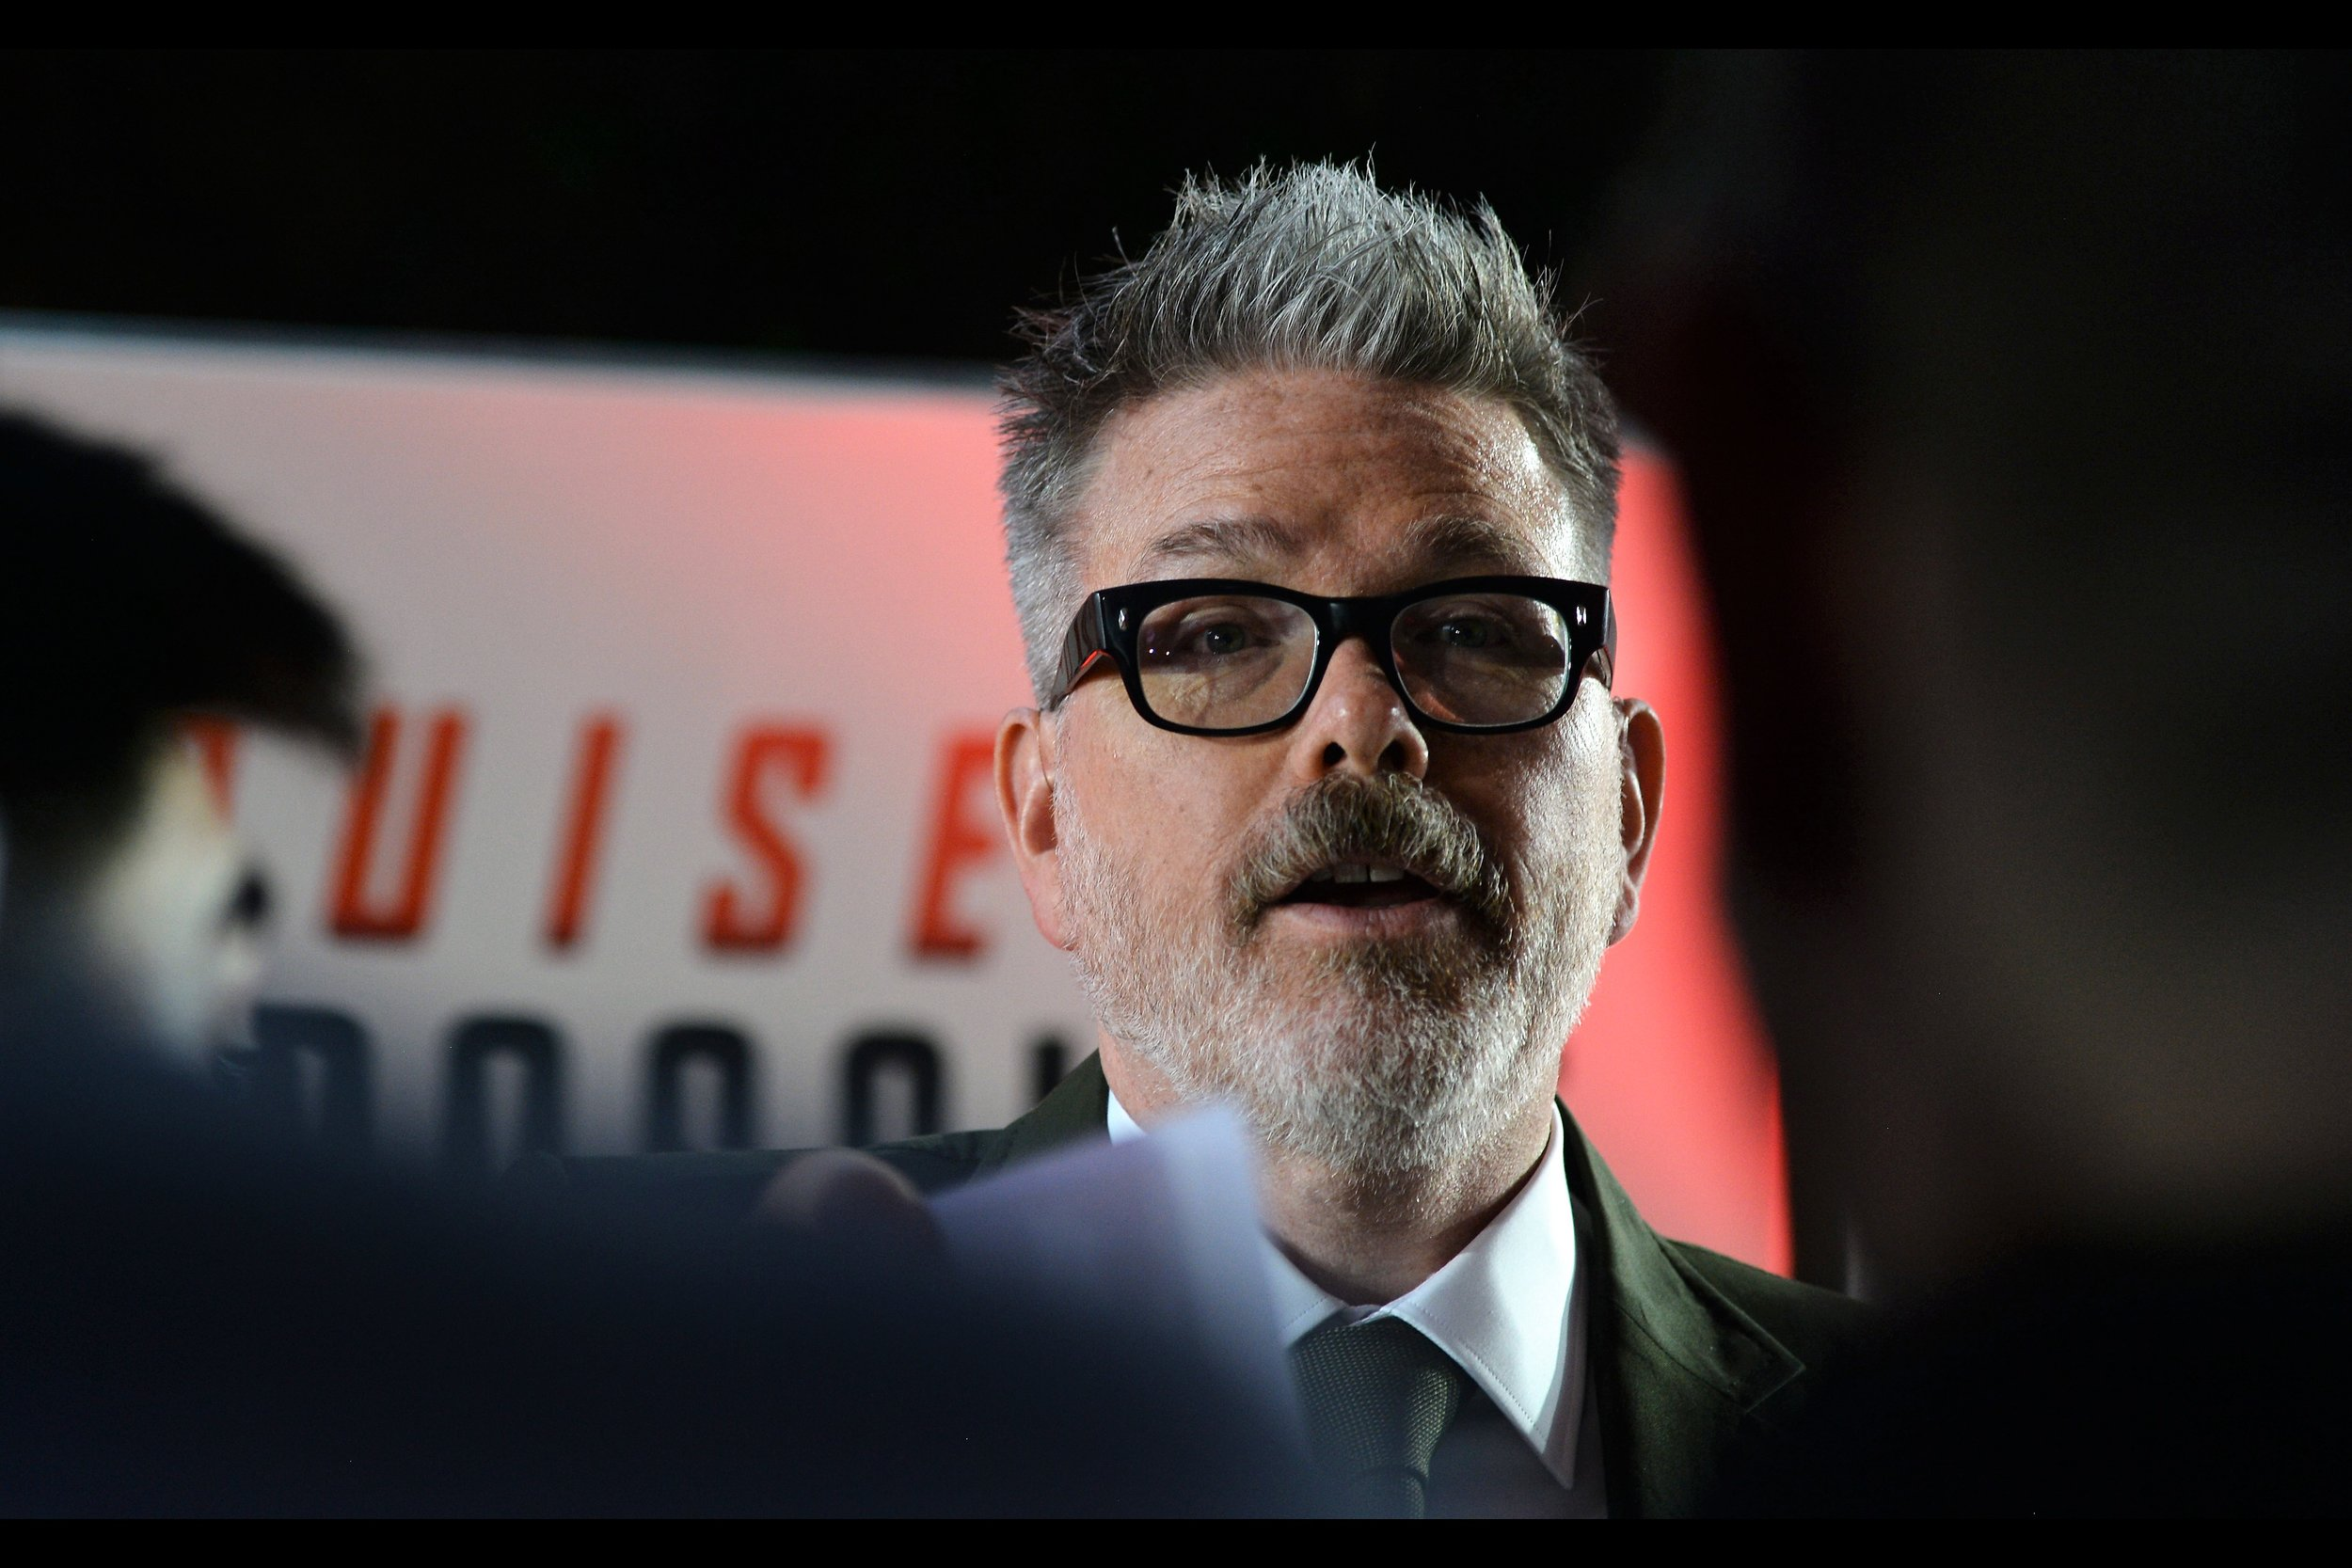 """""""I can read from this prepared statement I've brought with me, if you like. It says... many things. Several of them true""""  - Chris McQuarrie is so far the only returning director of the Mission Impossible franchise."""